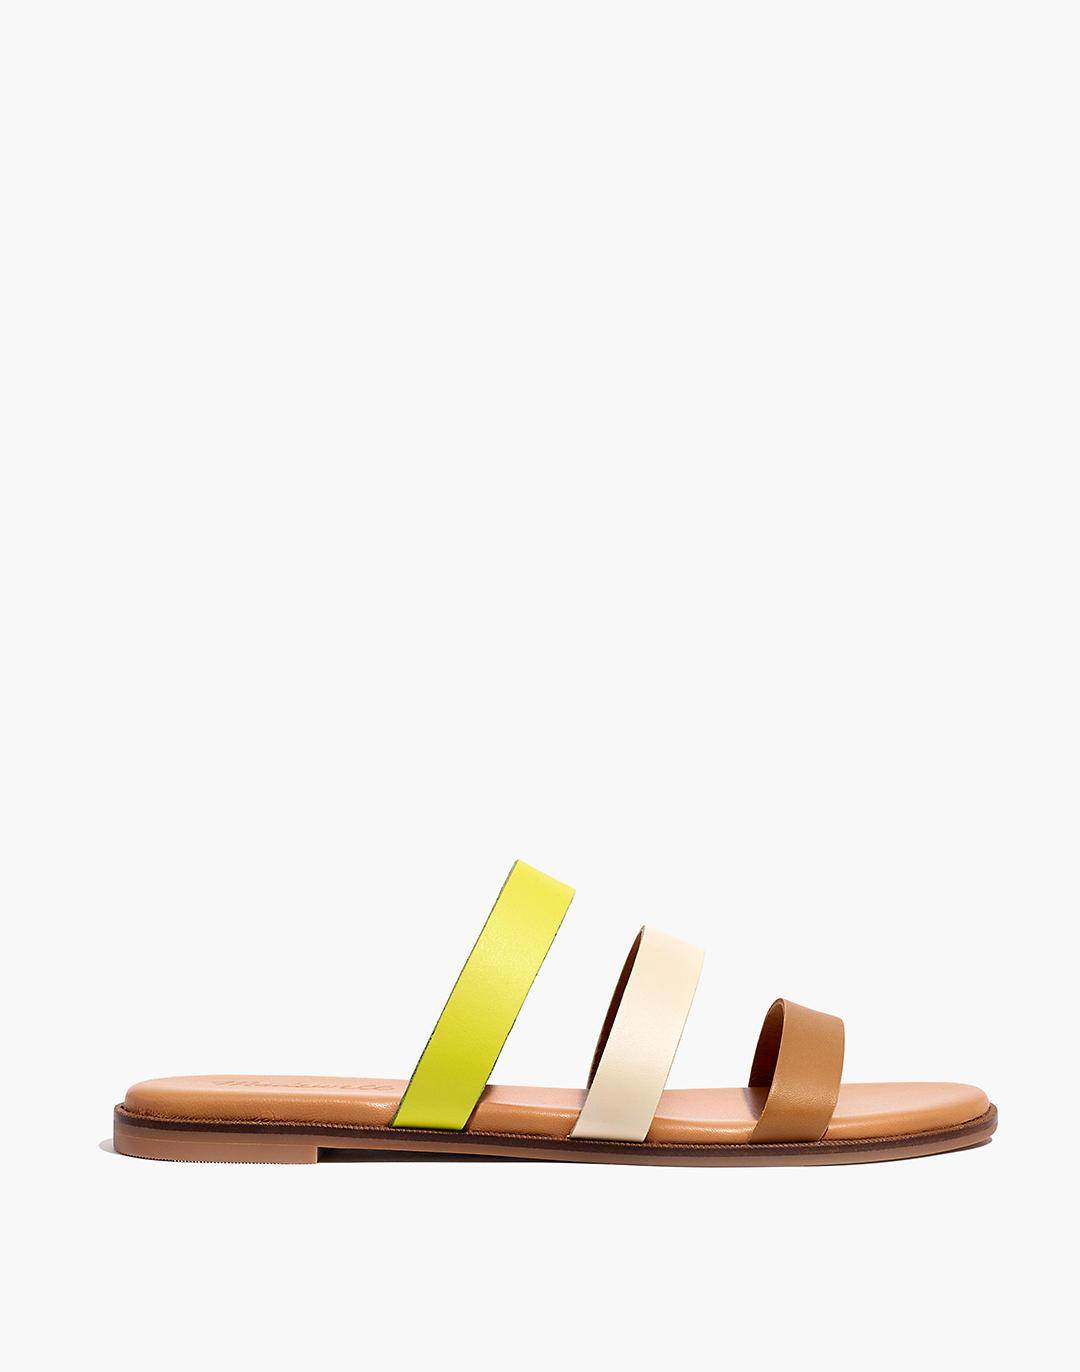 The Ilana Slide Sandal in Colorblock Leather 1